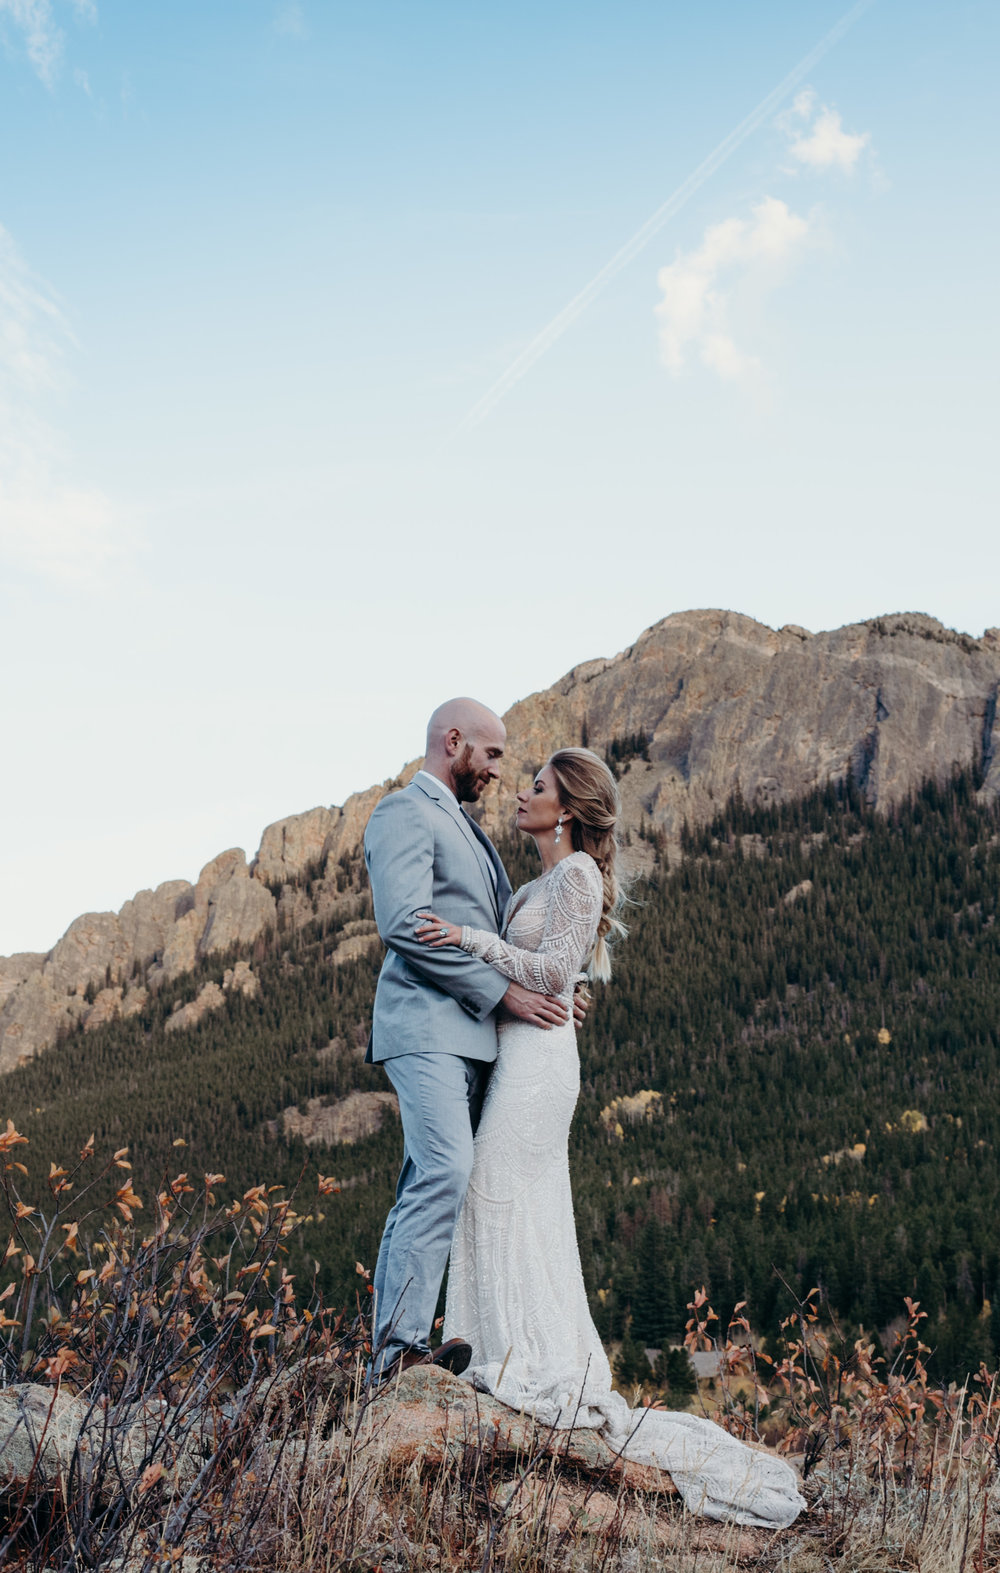 Colorado wedding photographed by Dana Jensen.